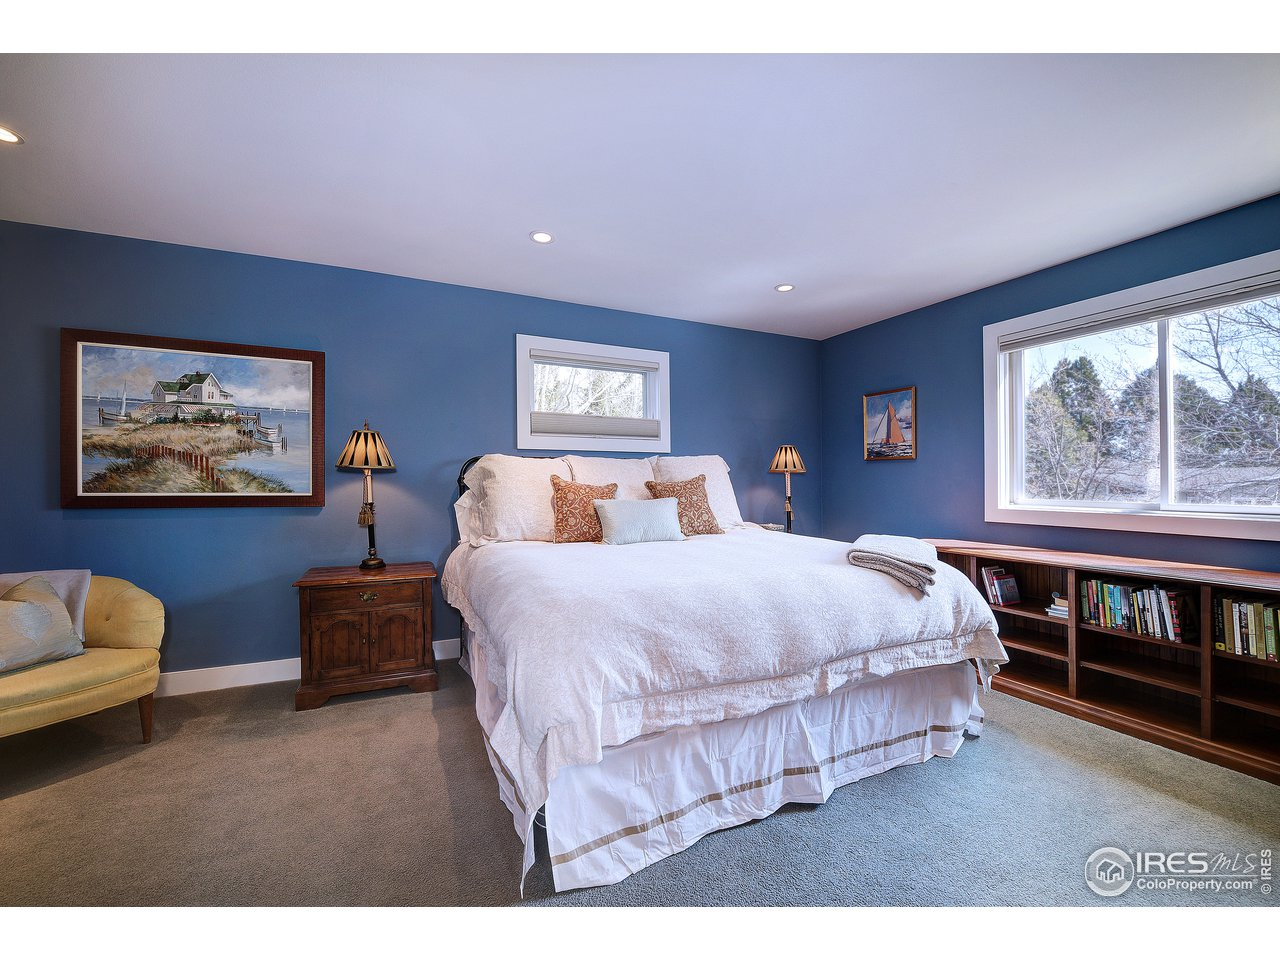 2nd bedroom with eastern light